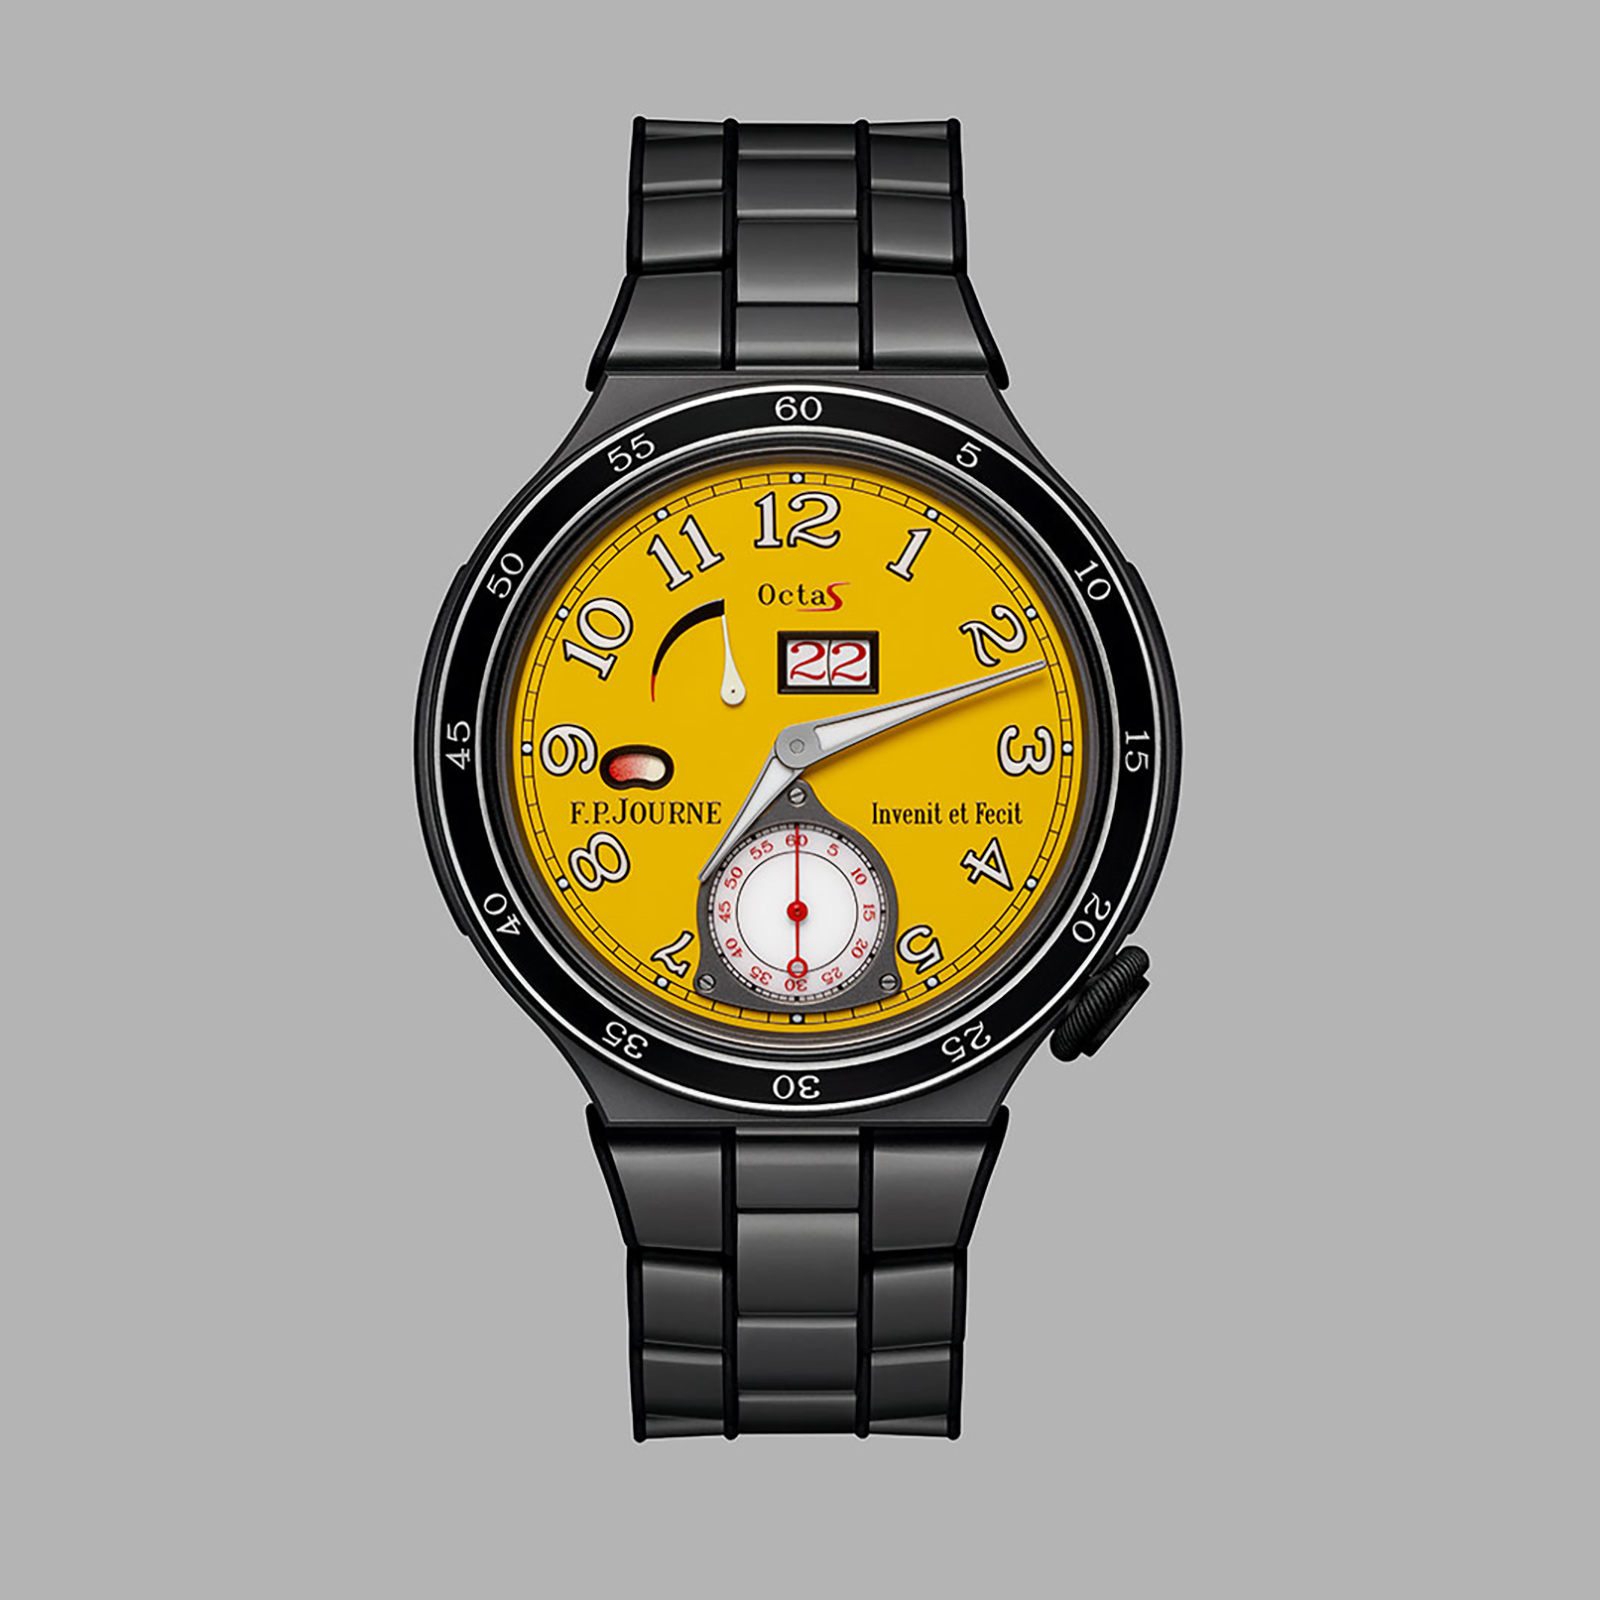 FP Journe Octa Sport yellow ARS2-3